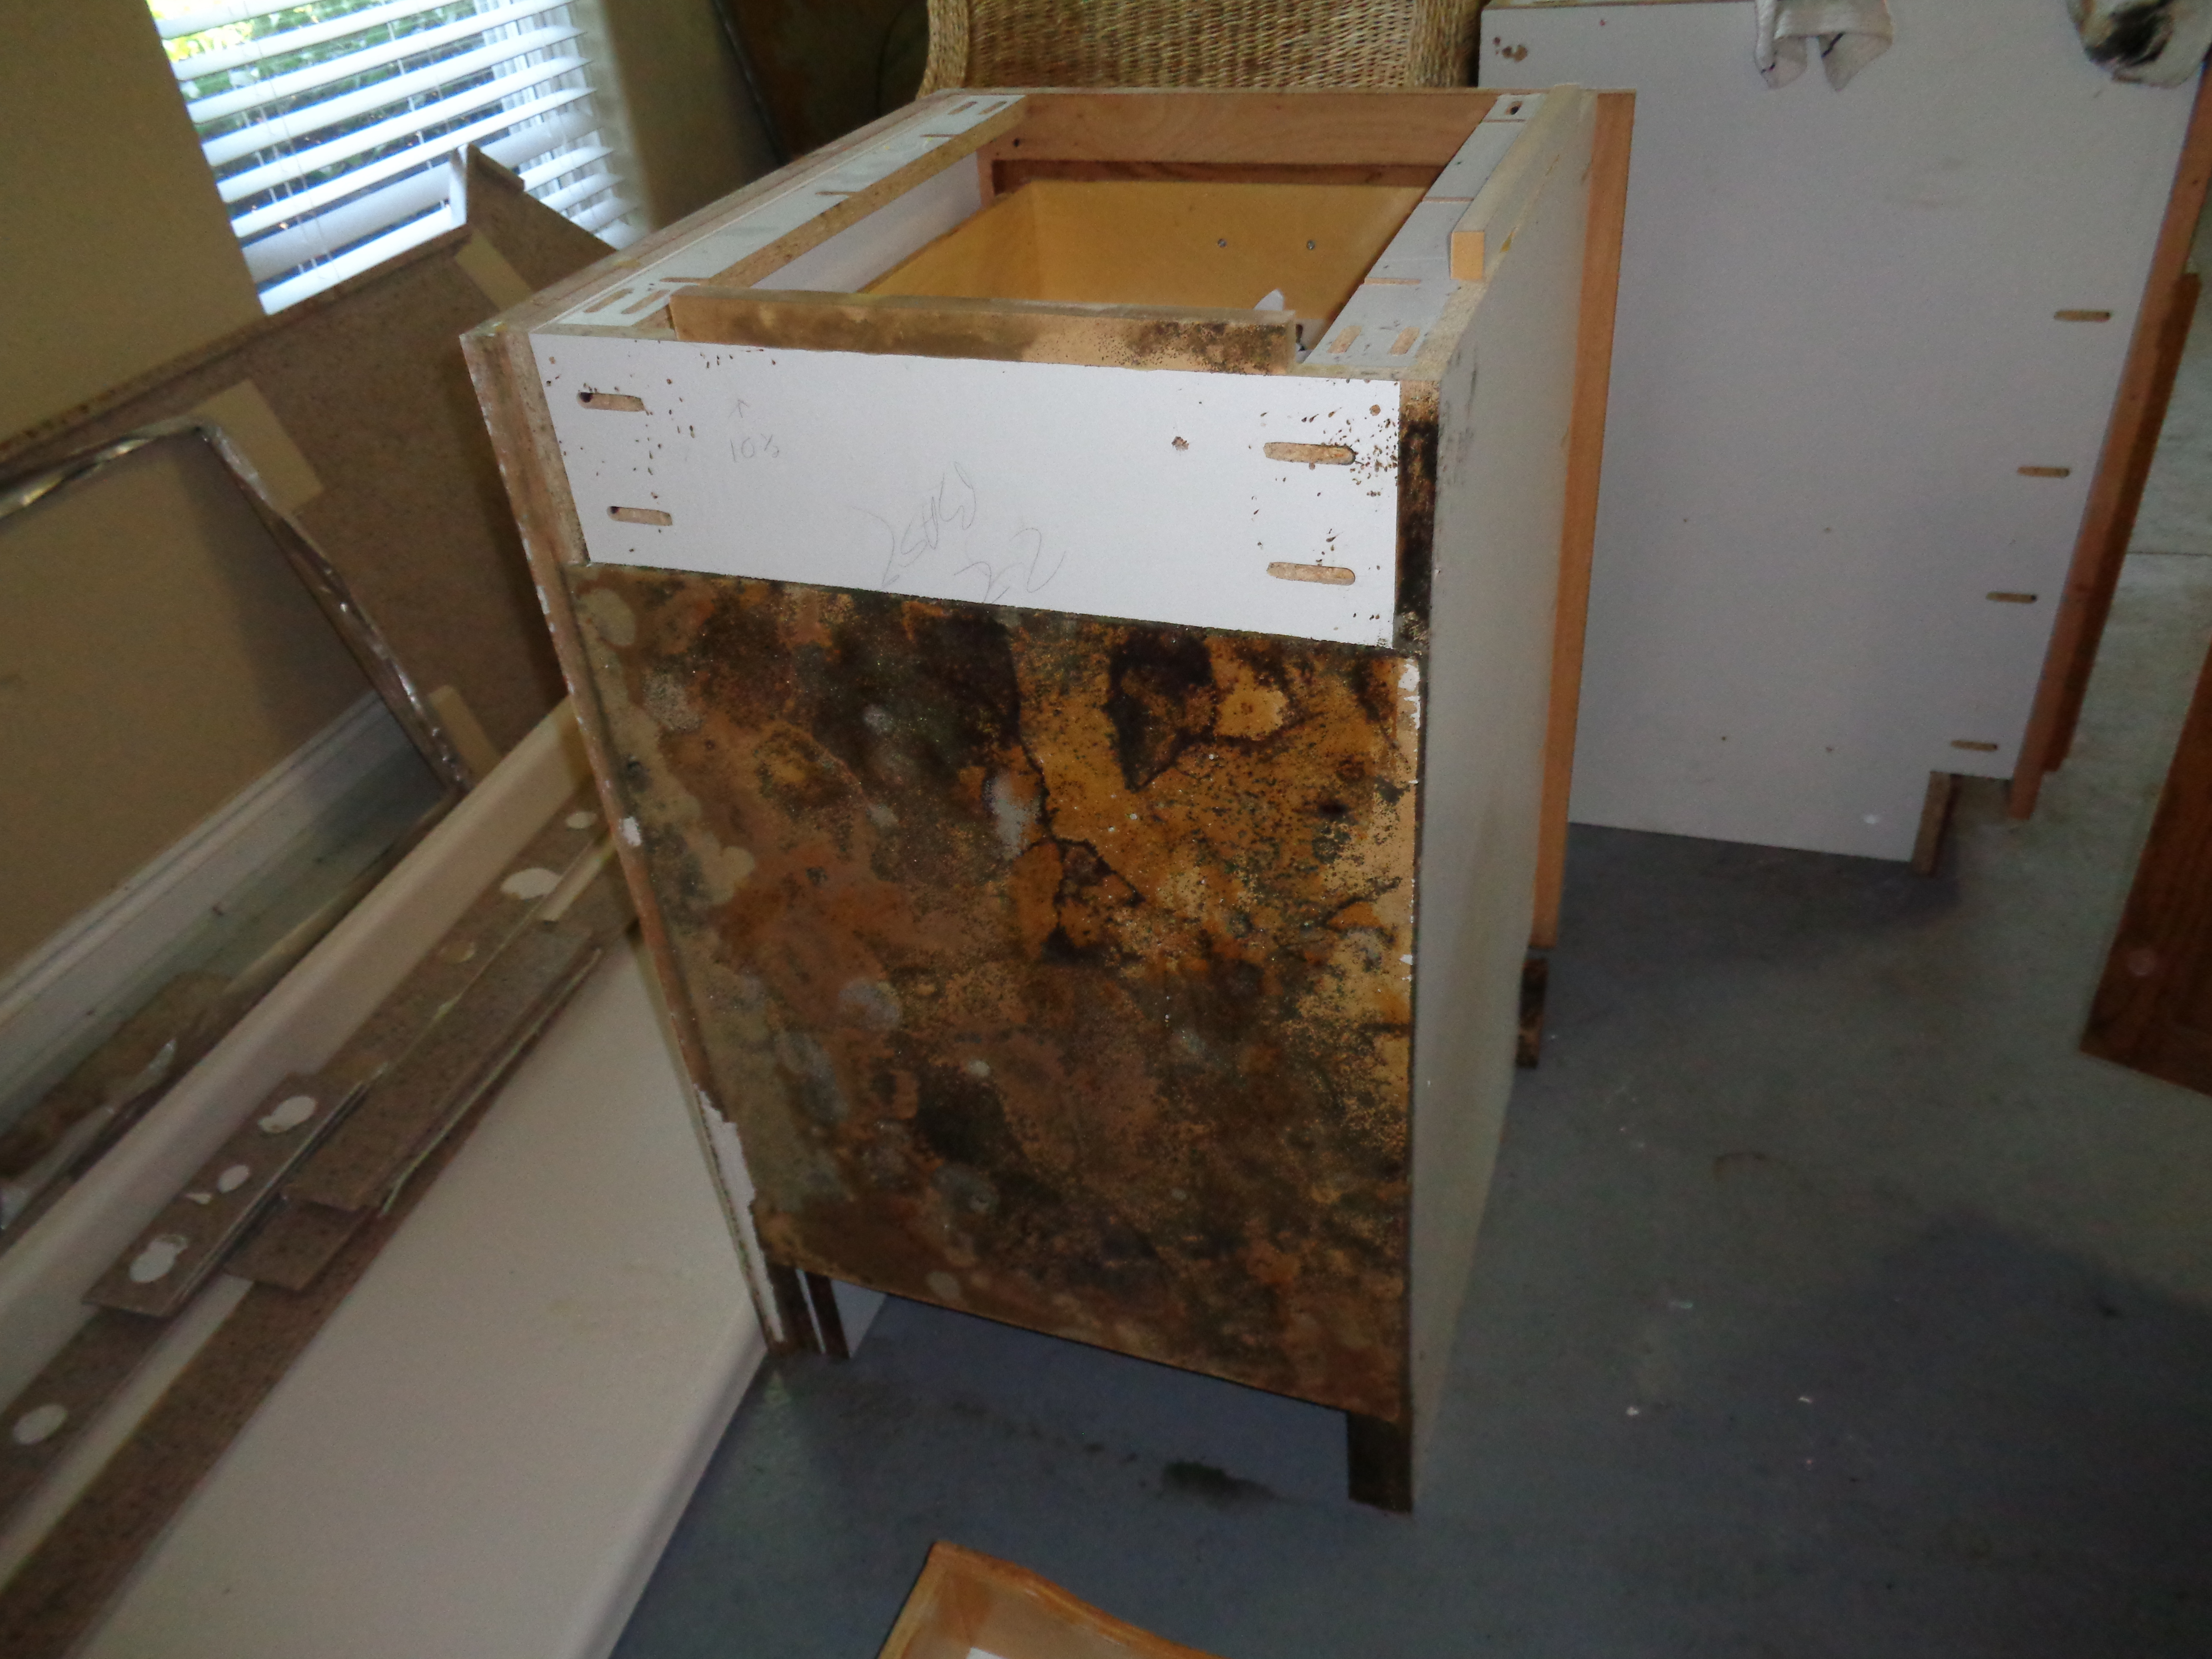 Wooden rack for mold inspections testing and remediation in Gulf Shores, AL